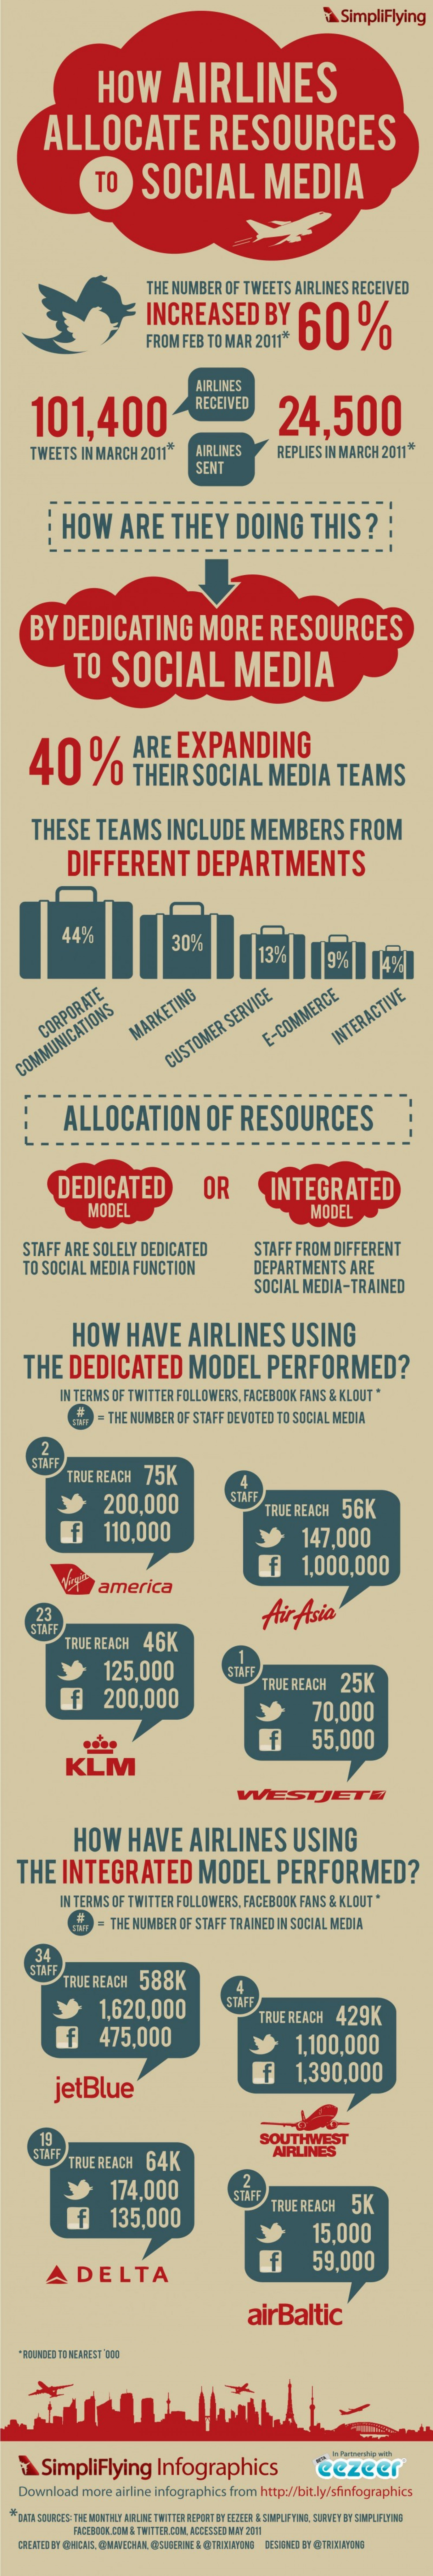 Airlines Allocate Resources to Social Media Infographic